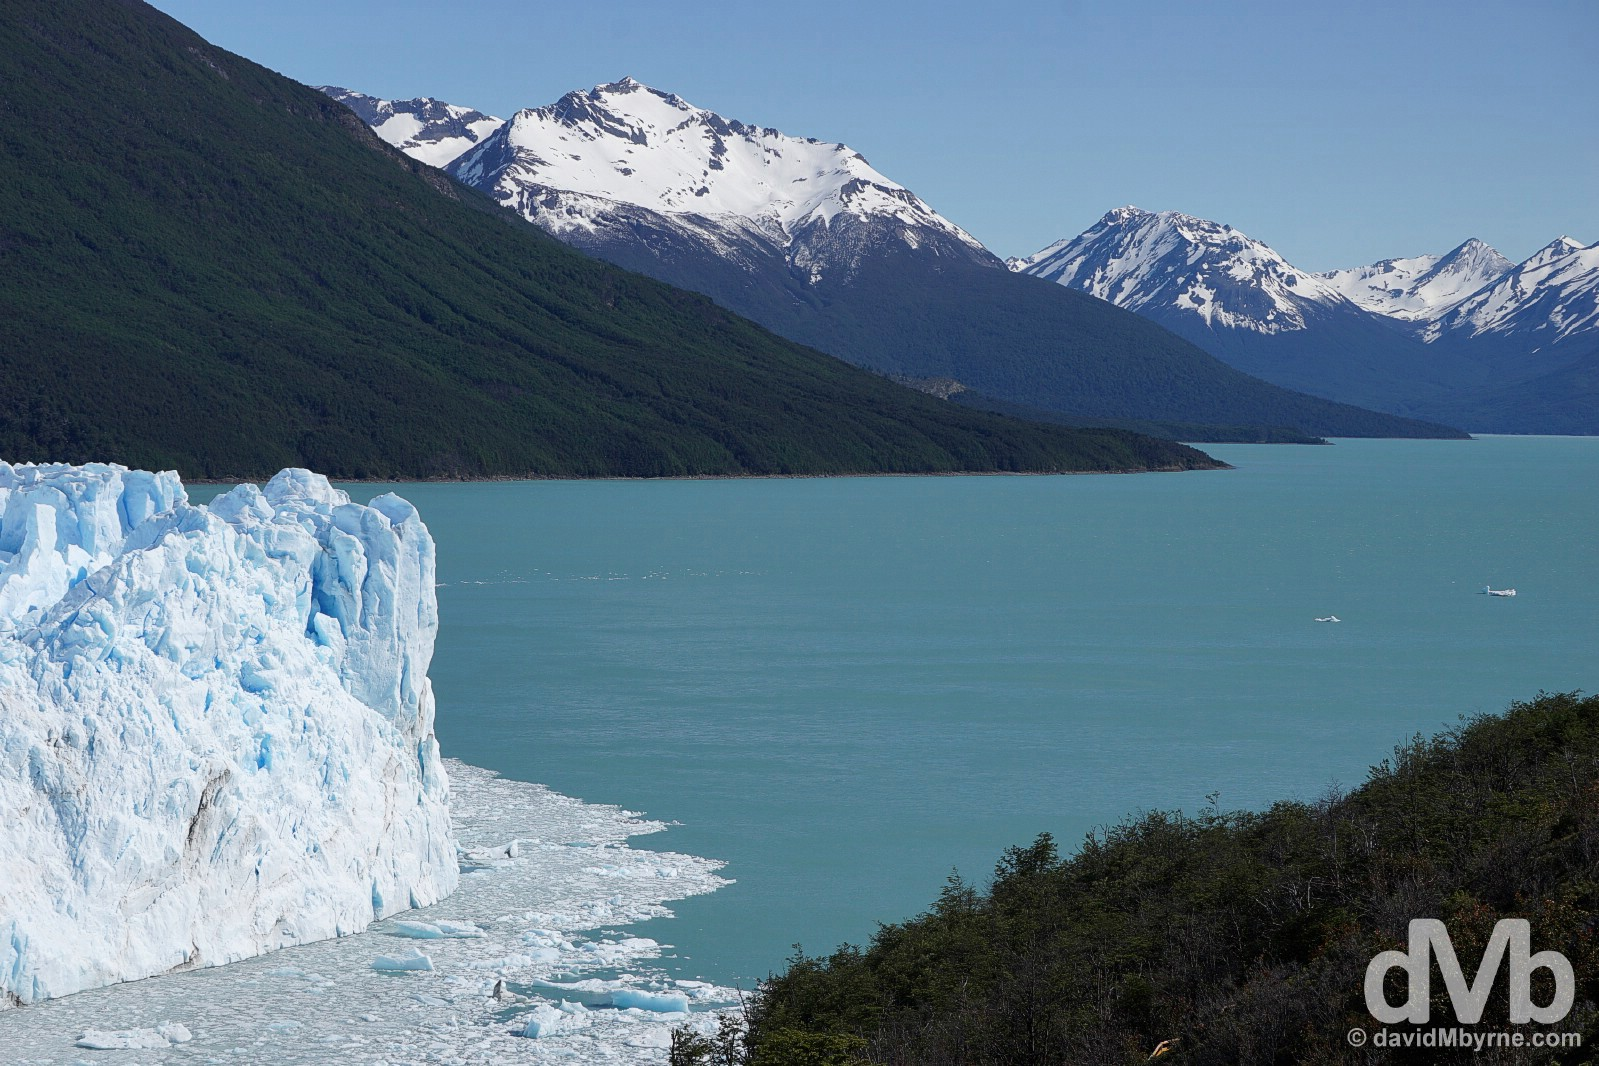 The 60 metre-high snout of the Perito Moreno Glacier, the Canal de los Tempanos (Iceberg Channel) & Lago Argentino as seen from the system of elevated walkways on Peninsula Magallanes of Parque Nacional Los Glaciares, southern Patagonia, Argentina. November 2, 2015.